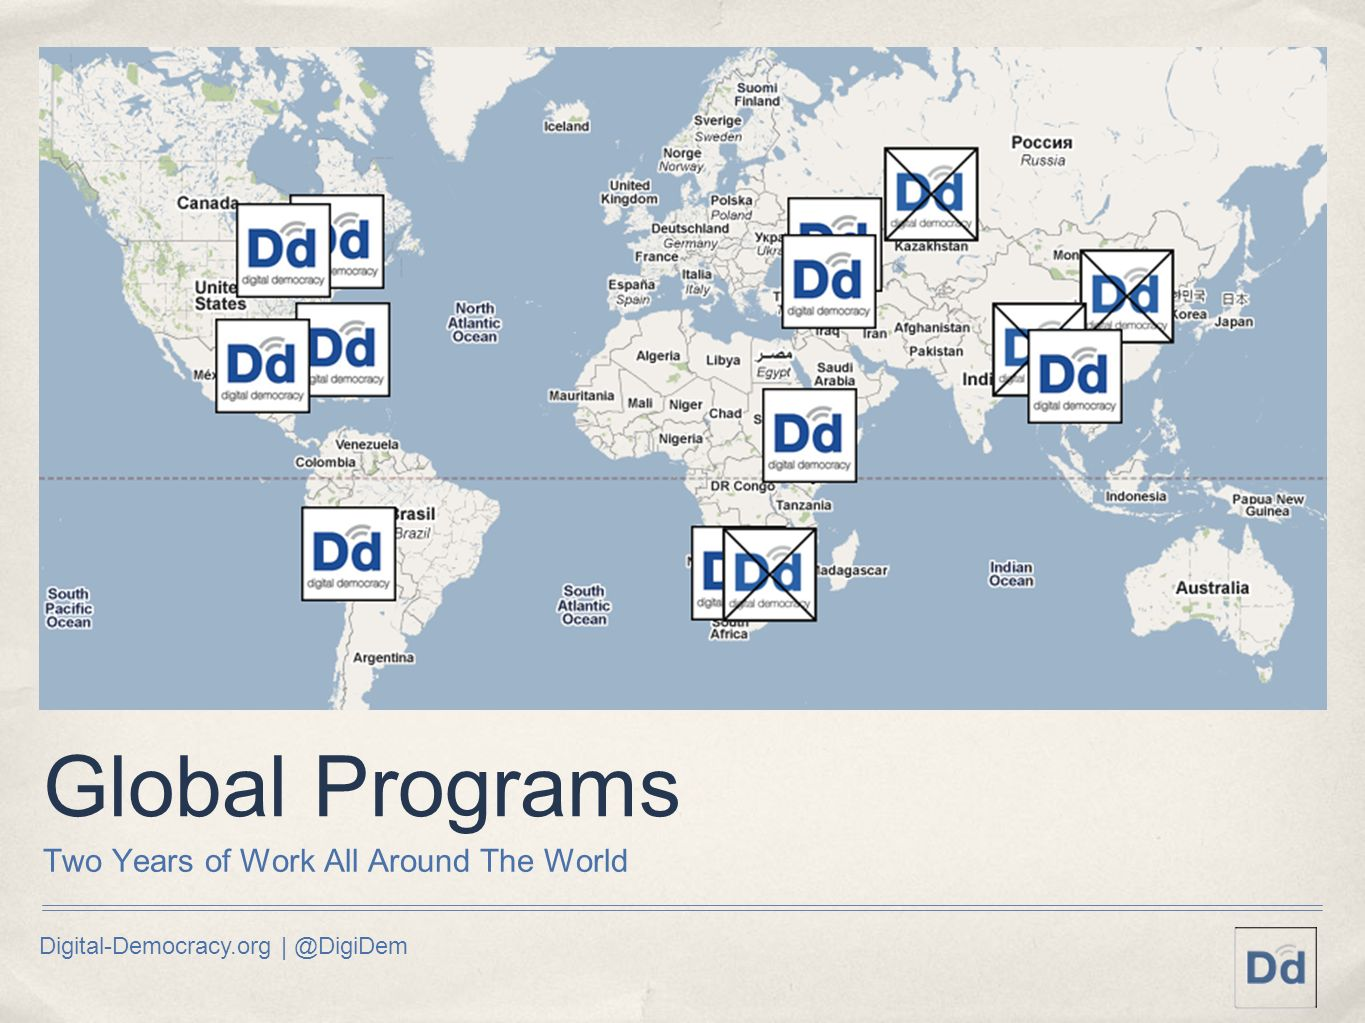 Digital-Democracy.org | @DigiDem Global Programs Two Years of Work All Around The World